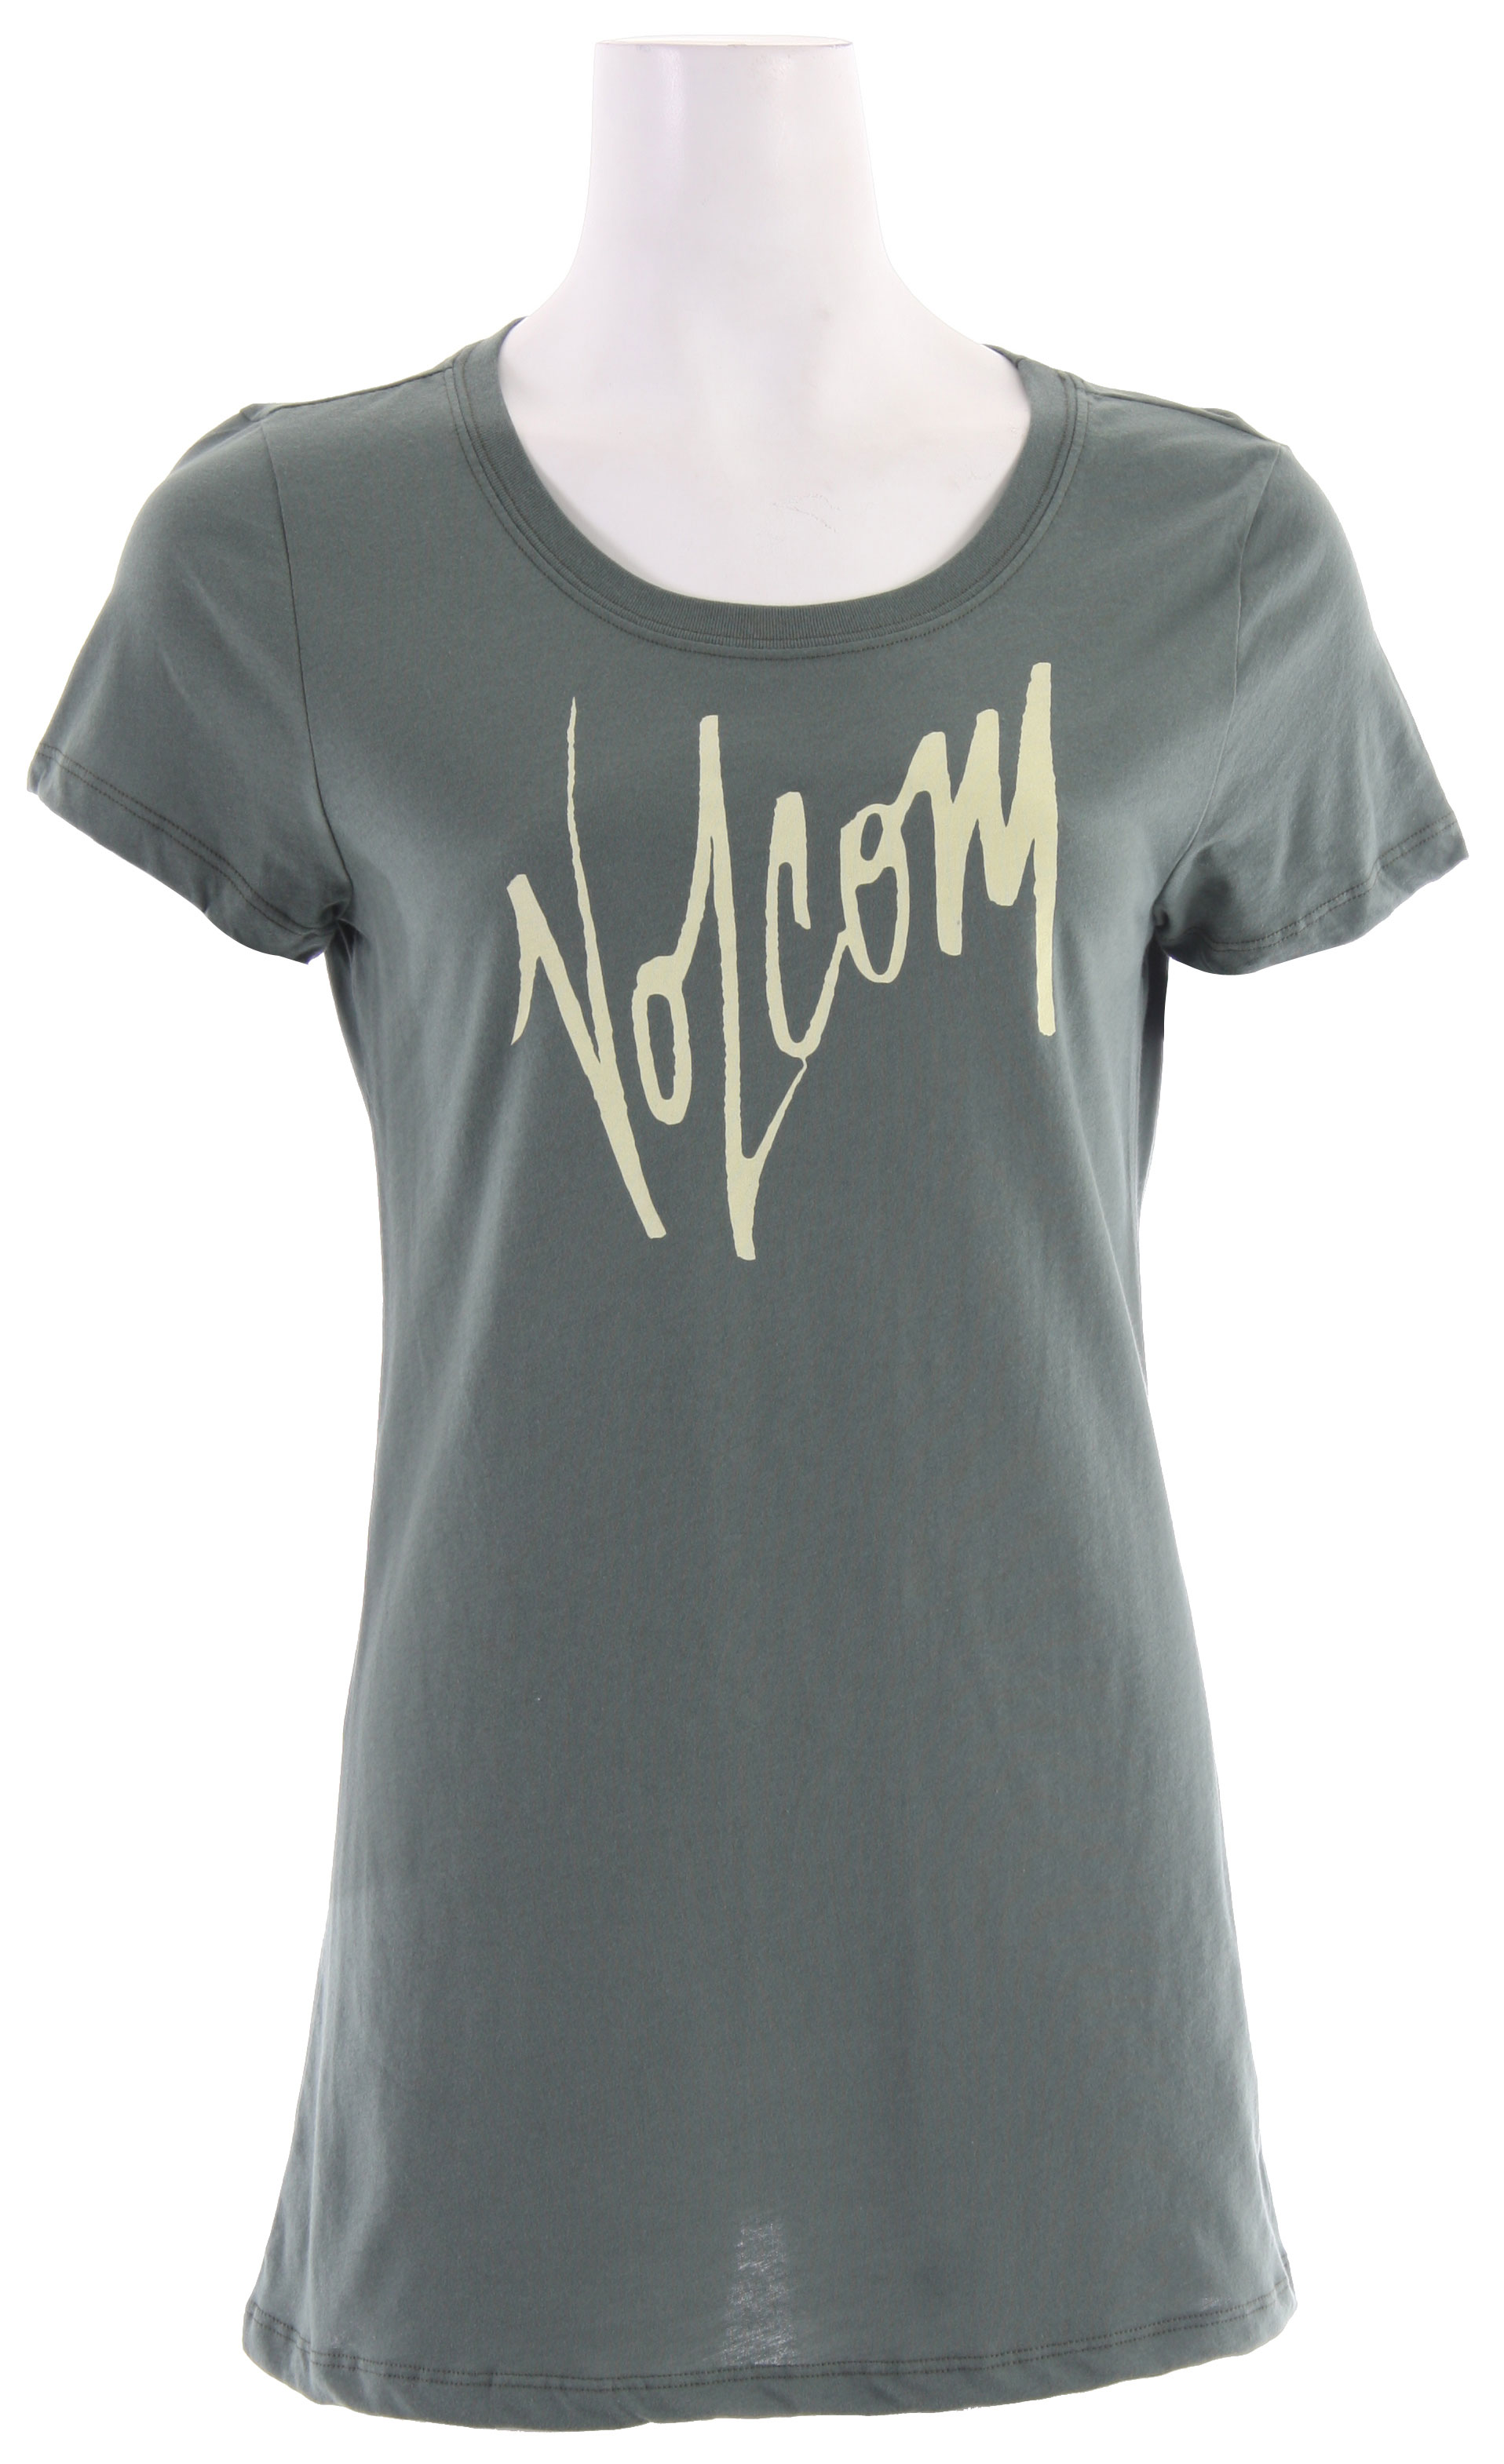 "Surf Key Features of The Volcom Gotta Have It Sheer T-Shirt: Regular Fit Crew Neck Short Sleeve S/S sheer tee with waterbase ink screen at front chest 26"" length 100% Cotton Extra Fine Jersey - $11.95"